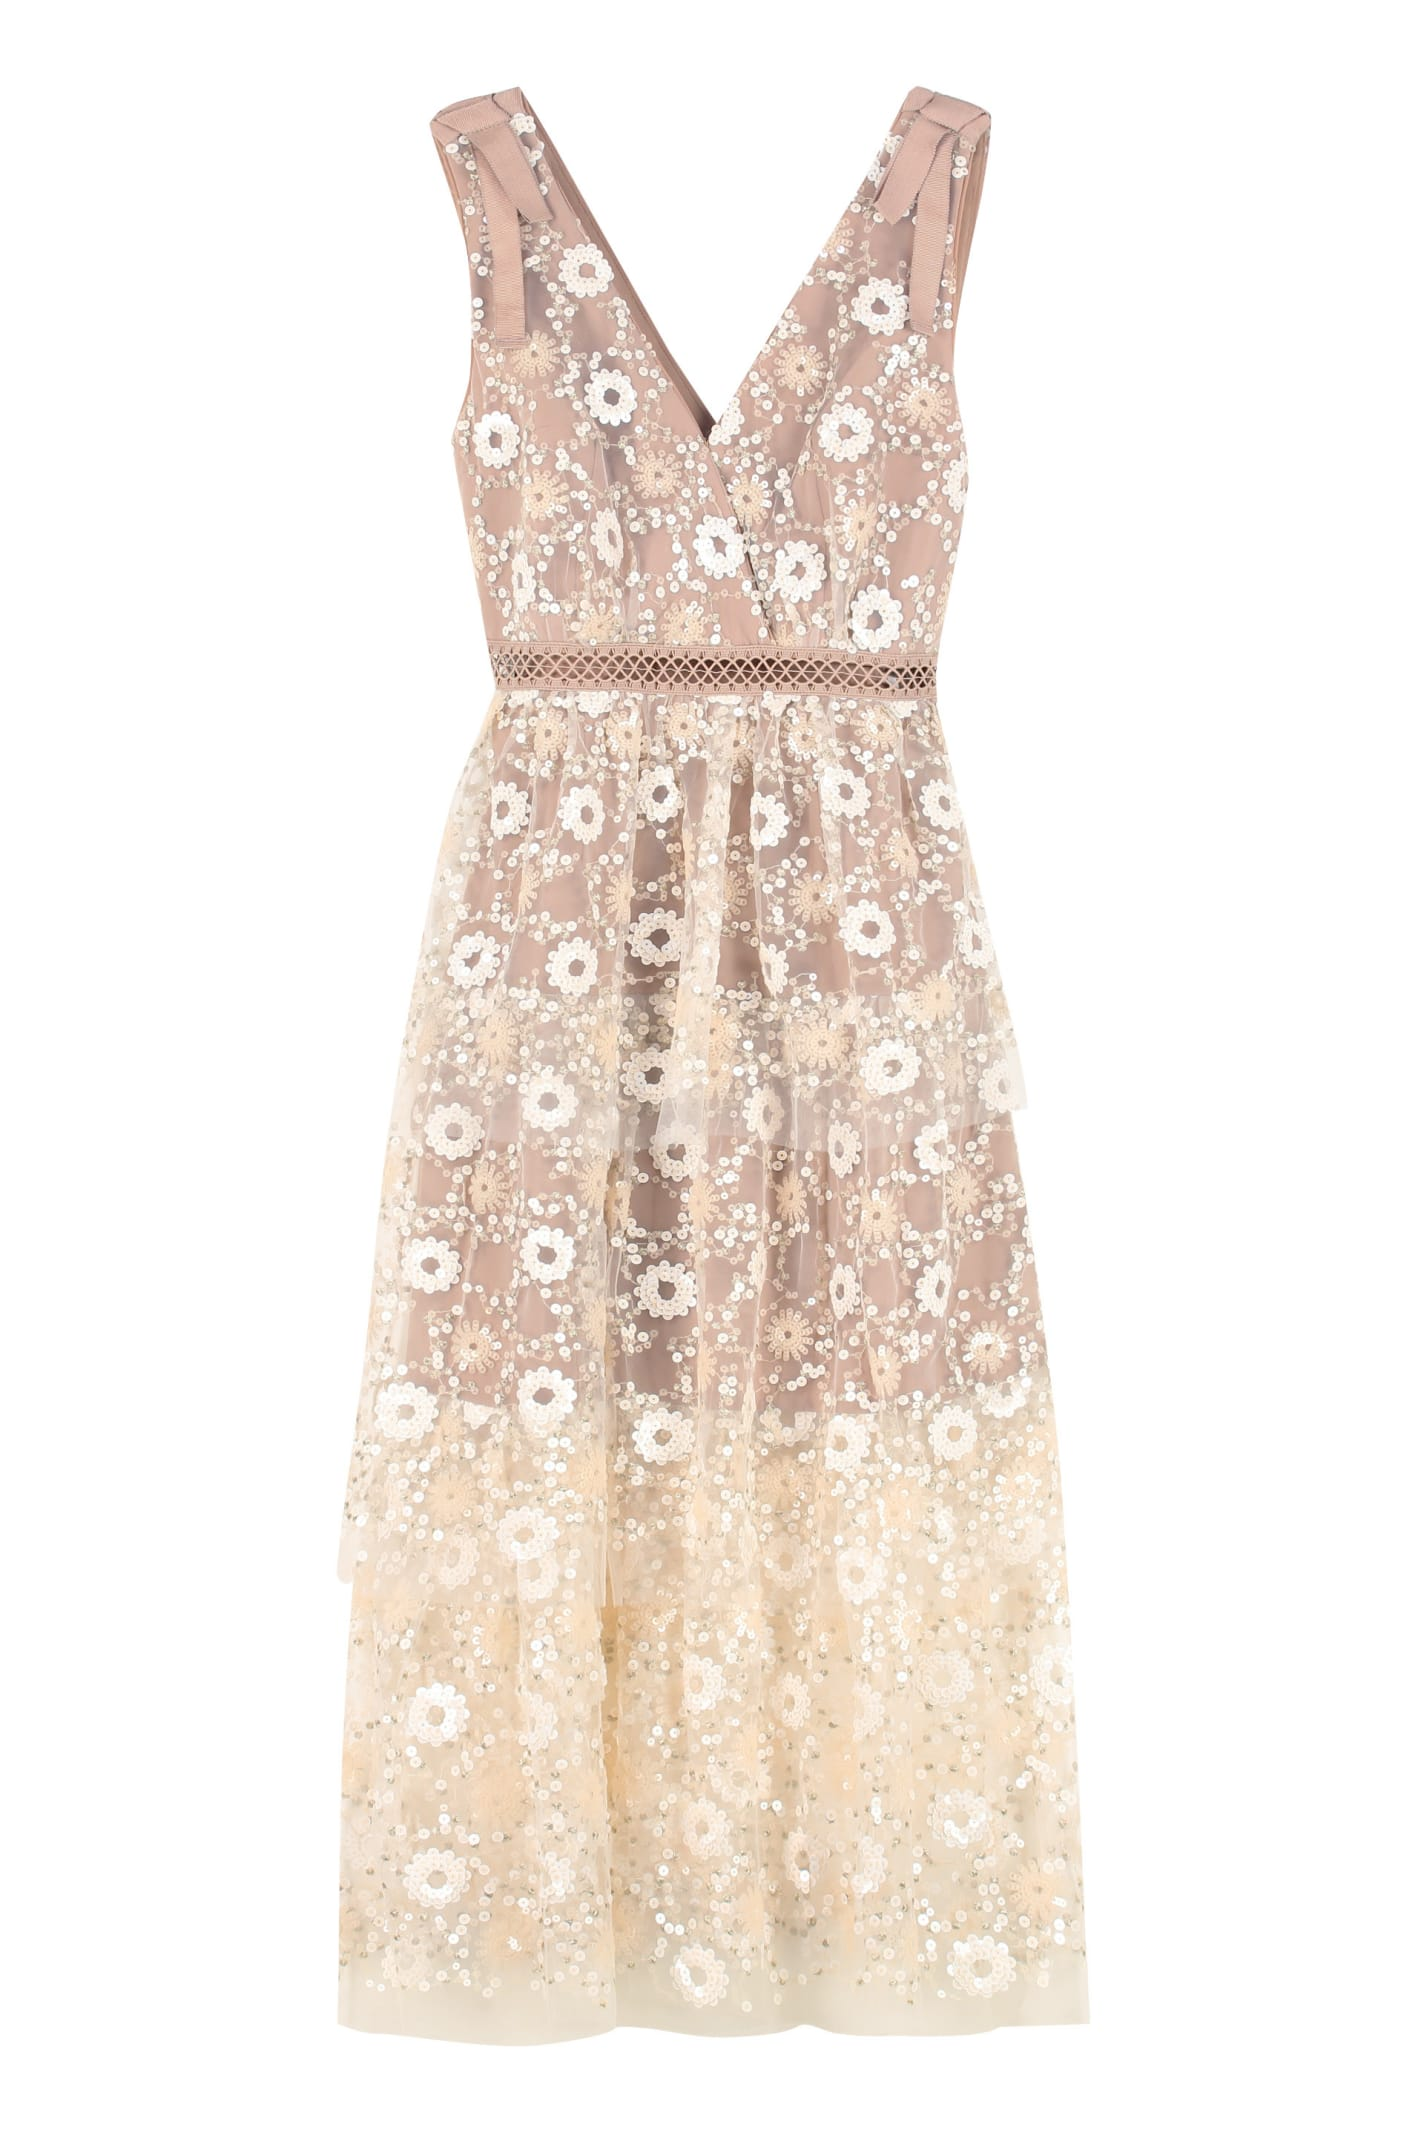 self-portrait Embroidered Tulle Dress